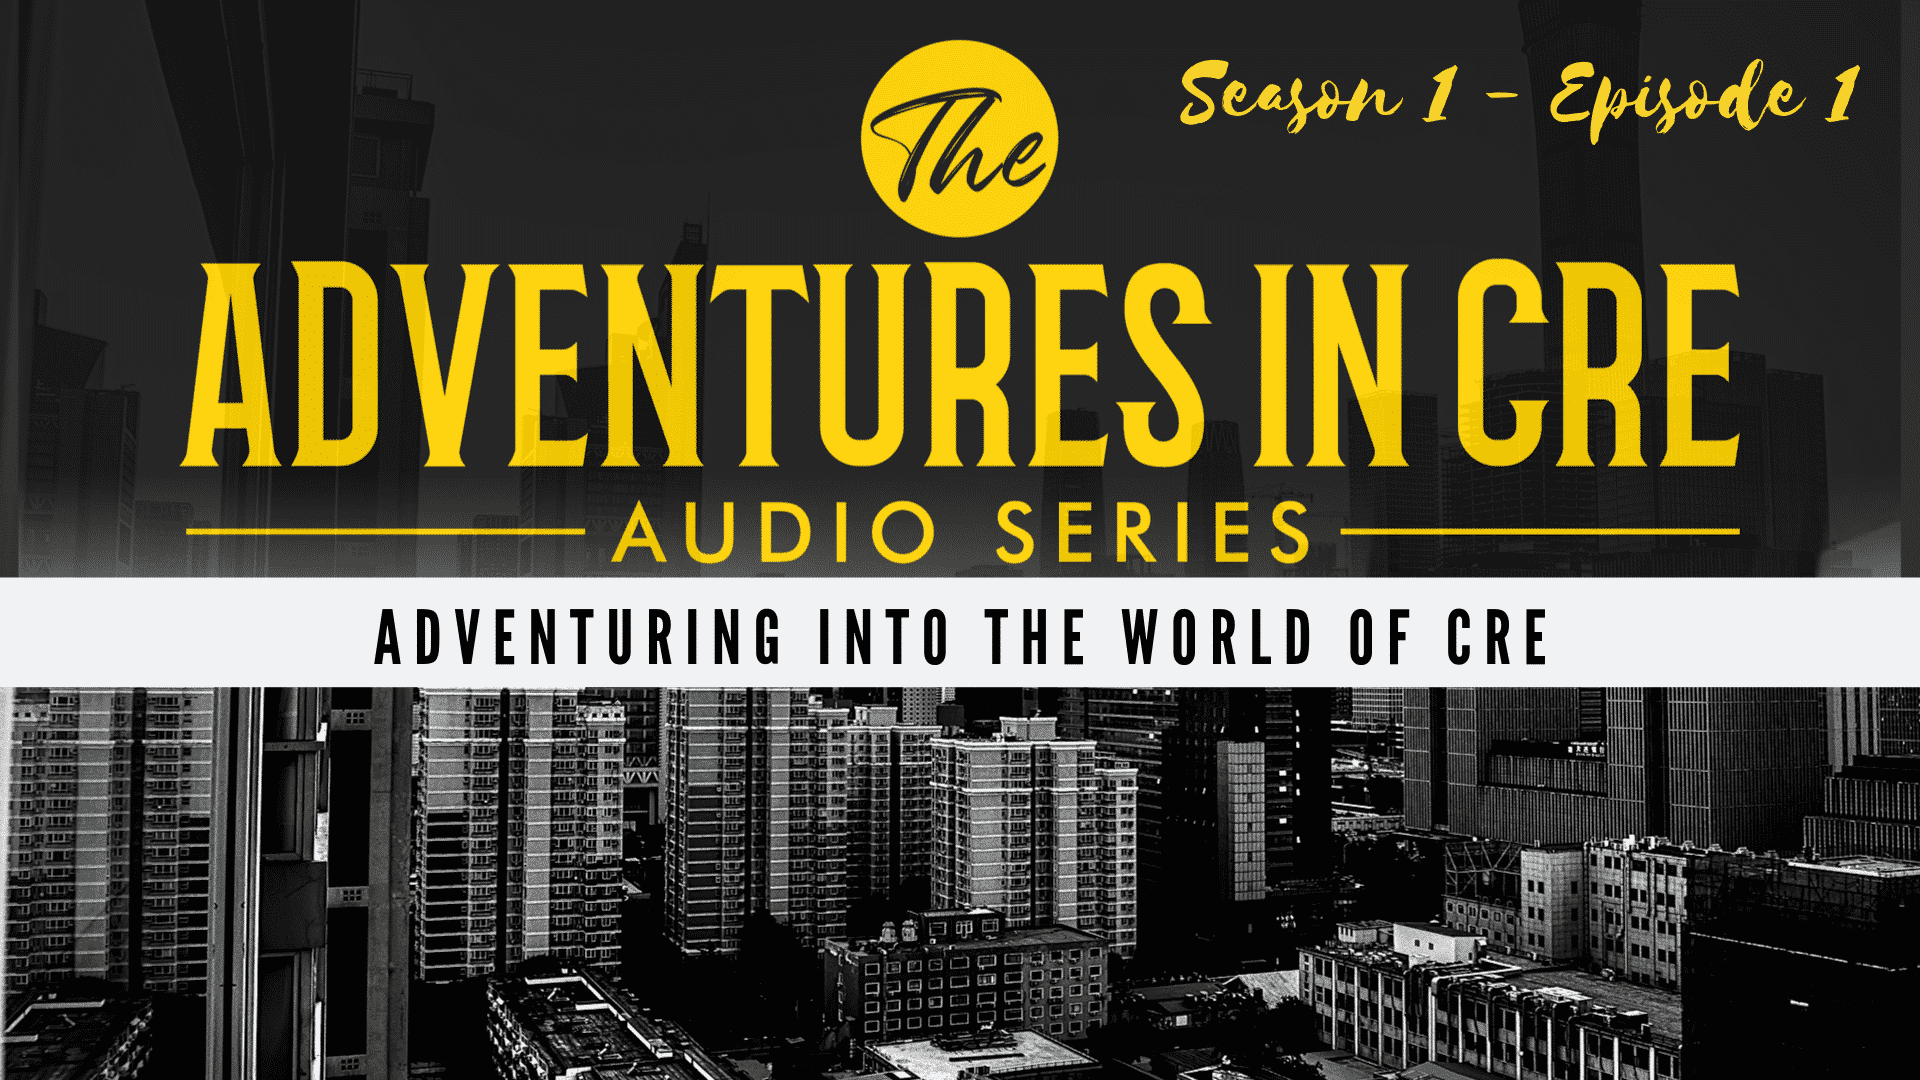 adventures in cre audio series season 1 episode 1 - adventuring into the world of cre